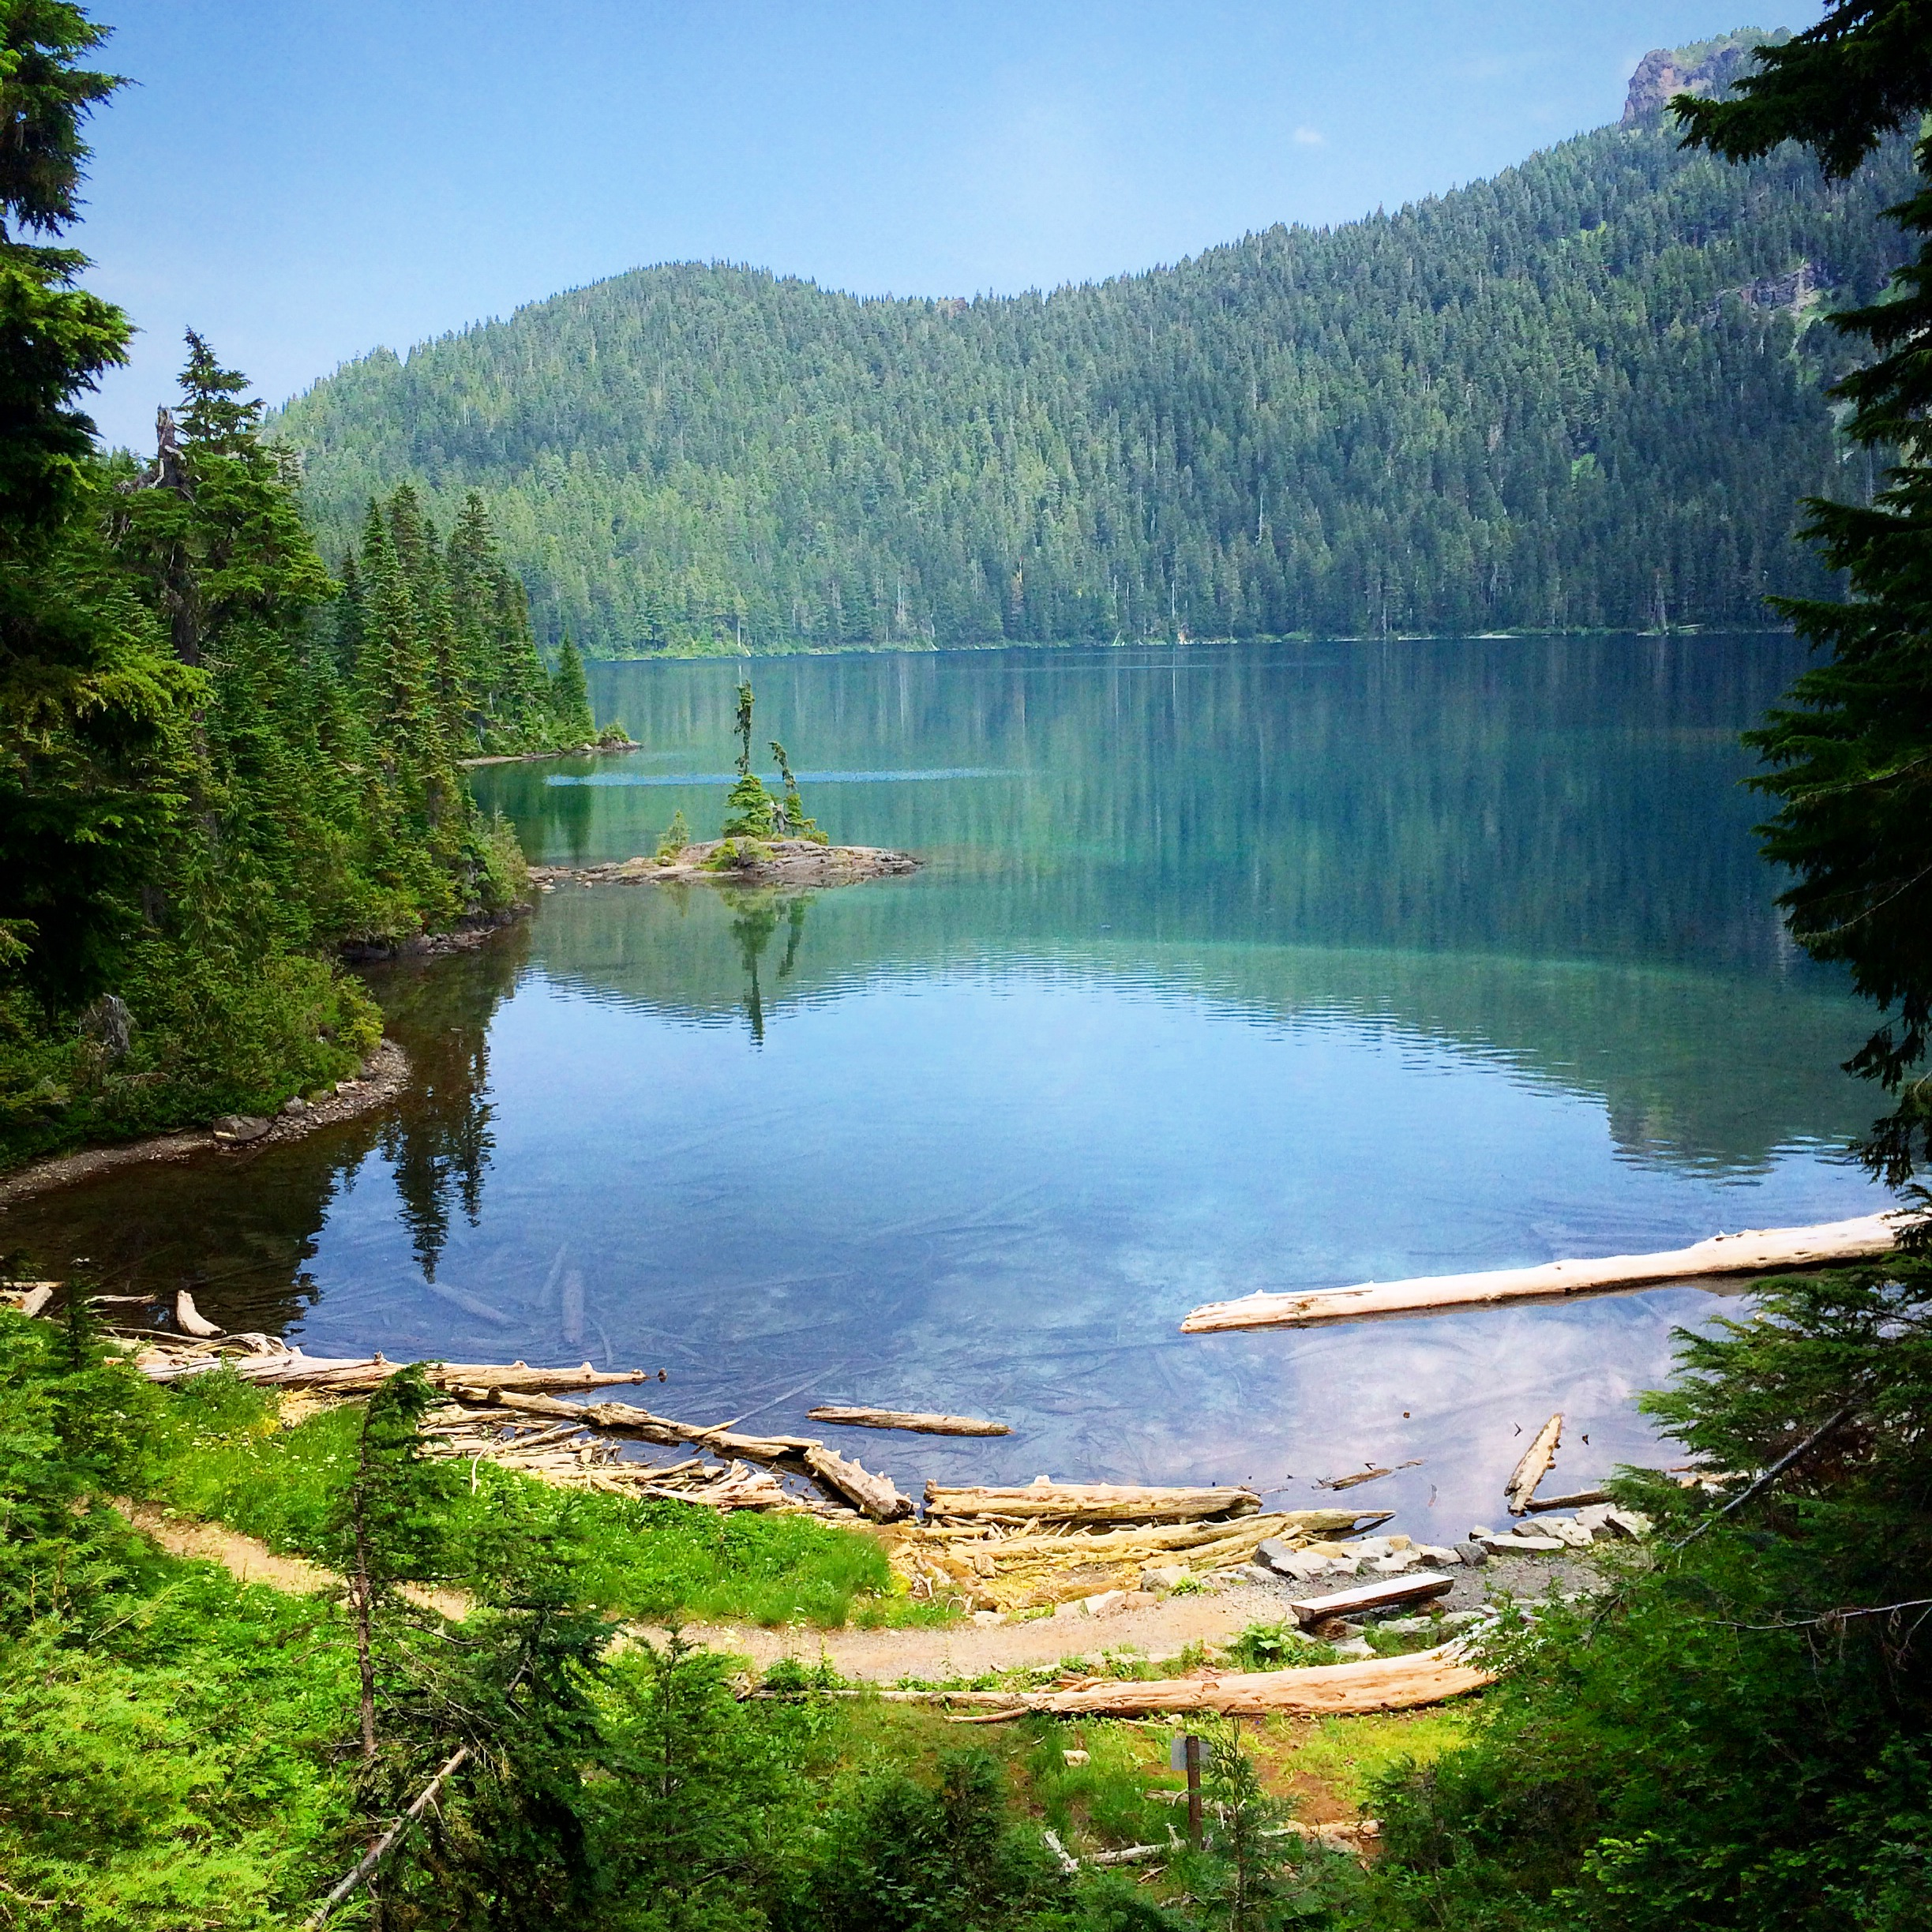 Mowich Lake, Mt. Rainier National Park, WA  Hiked to Spray Falls on July 8th 2015. The view was great, the water was cold but great, the flies where everywhere, haha. All in all, a great day!